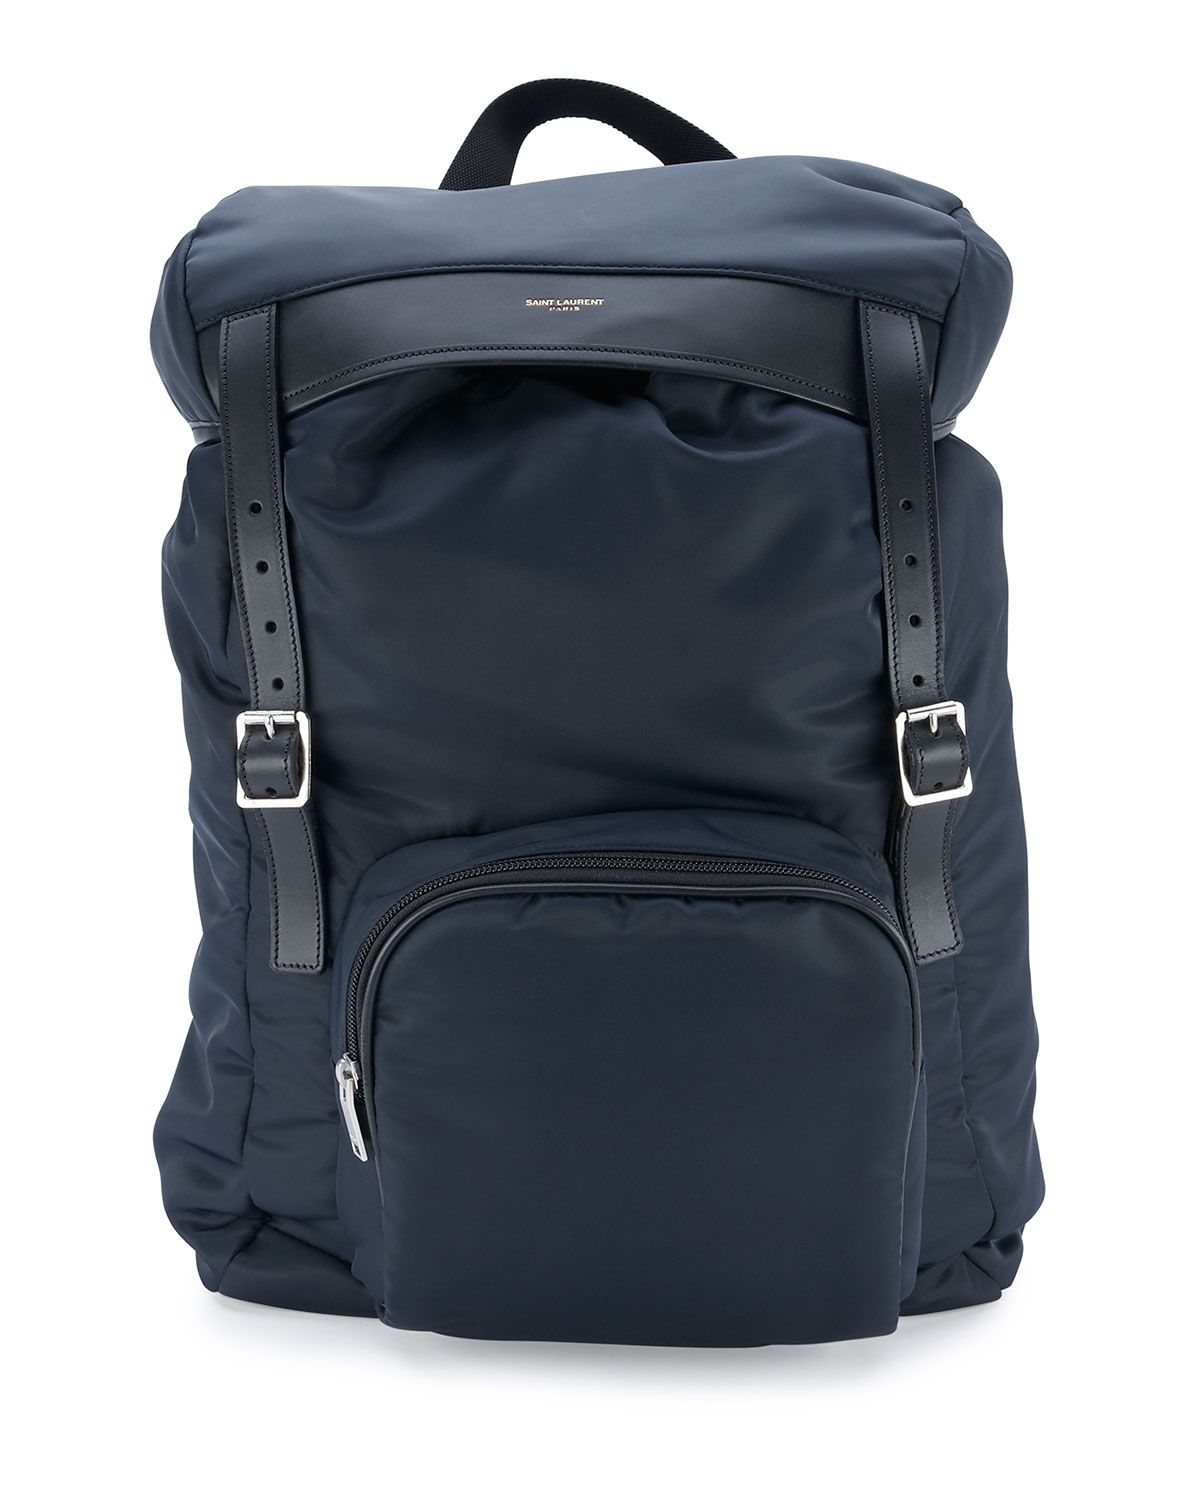 7a5a019ecc0 Yves Saint Laurent Nylon Hunting Backpack w Leather Trim